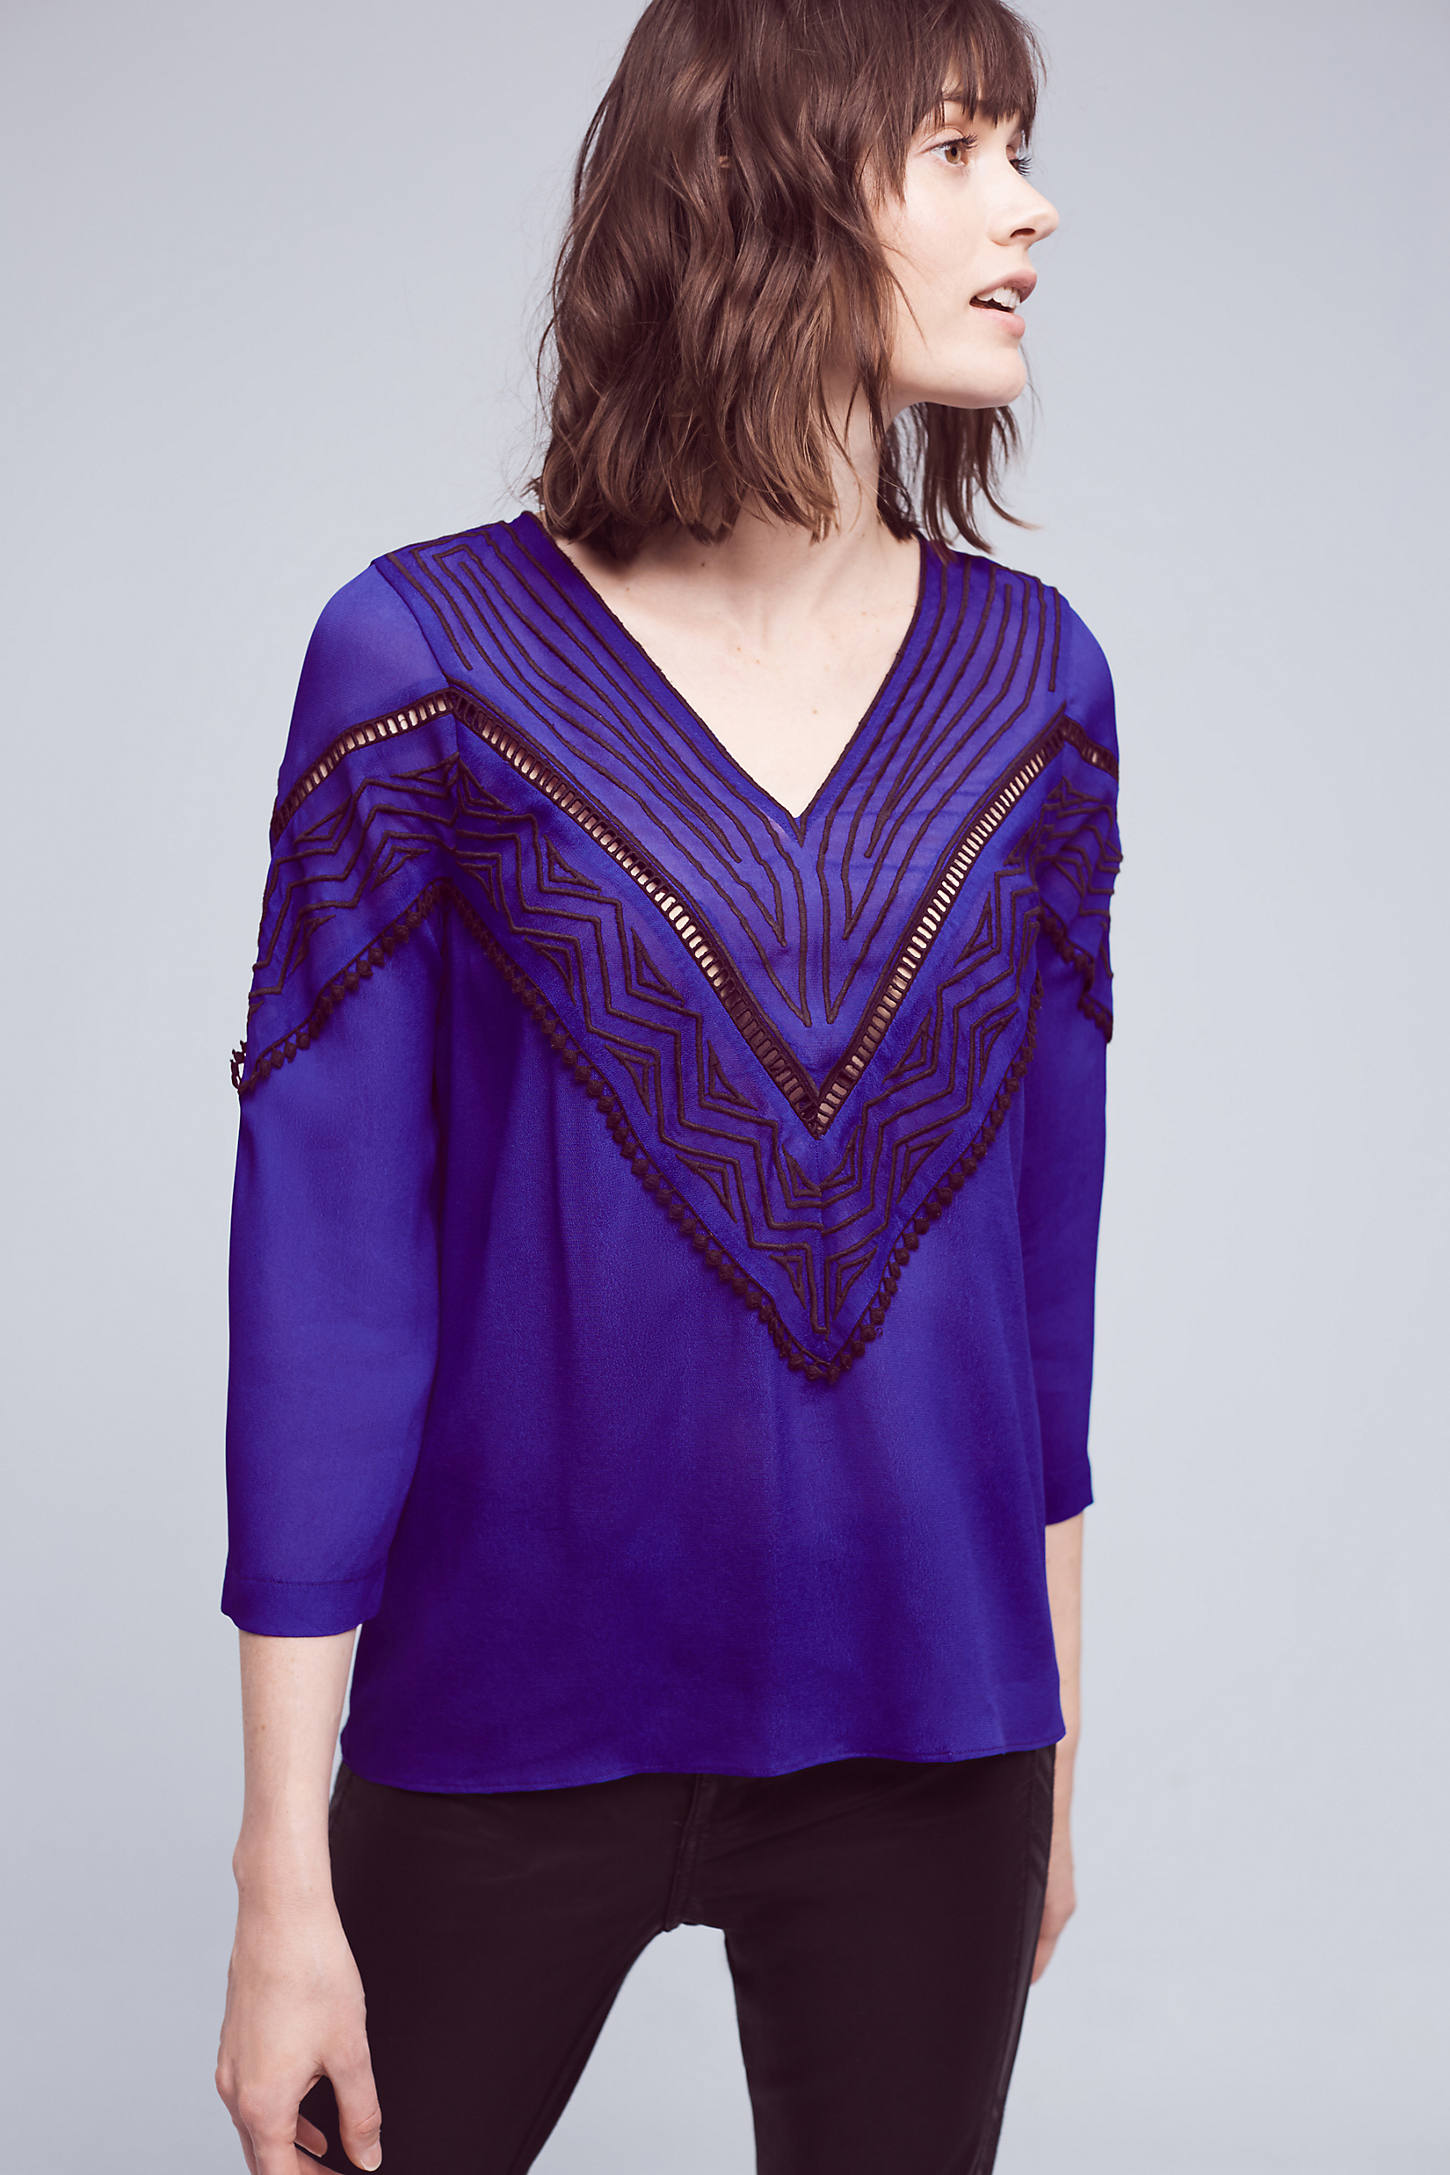 Stroke of Midnight Embroidered Blouse